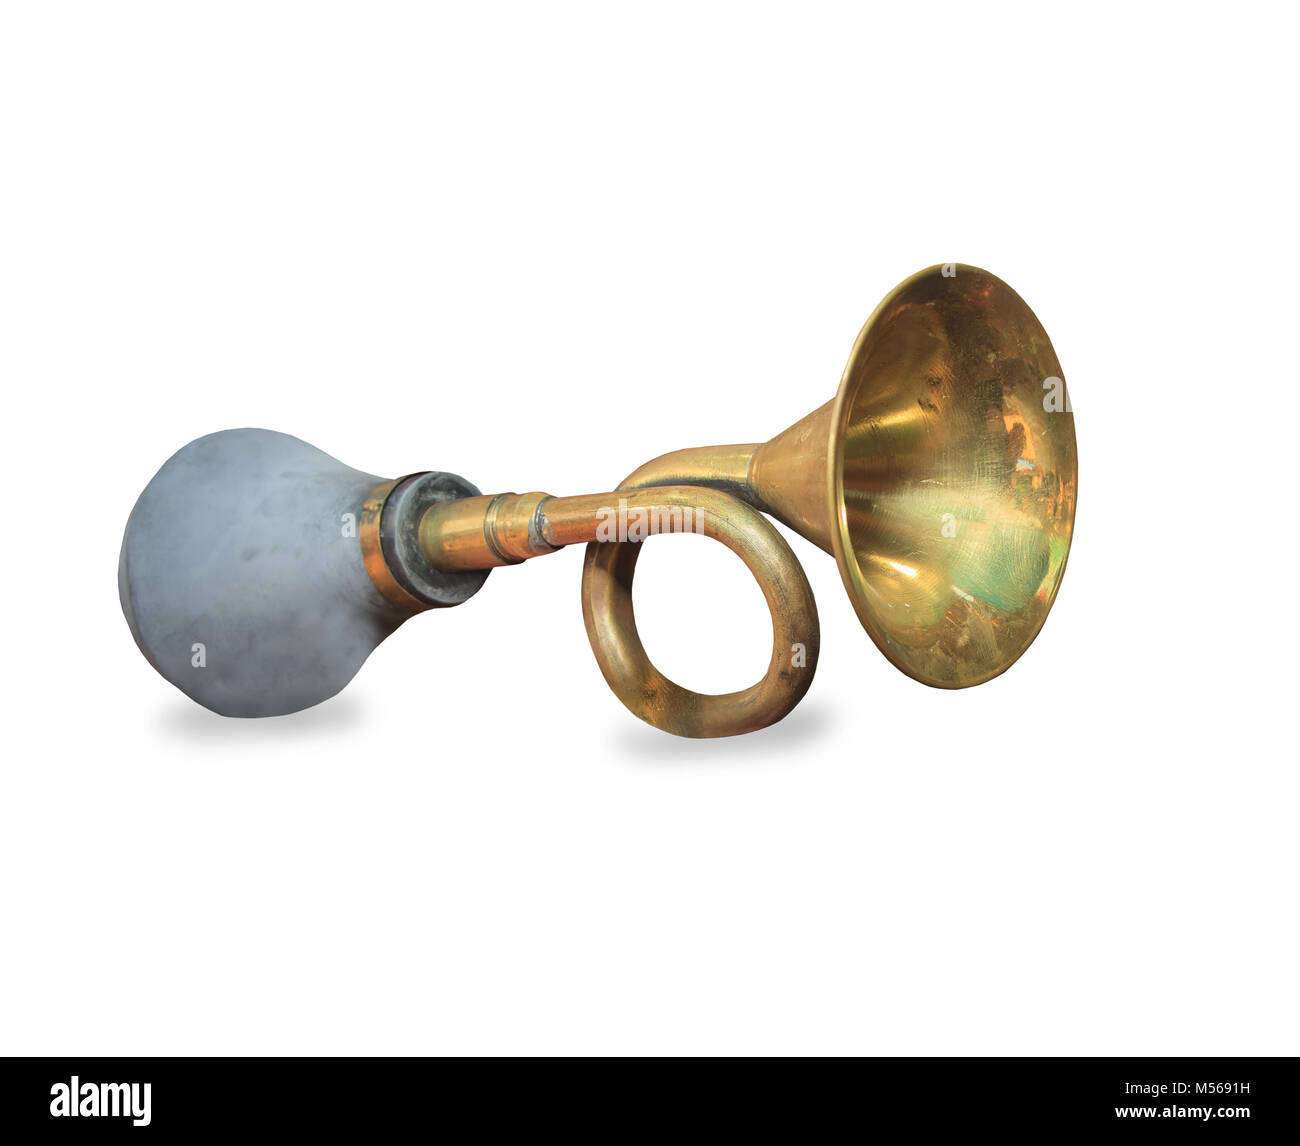 Vintage car horn or klaxon isolated on white background Stock Photo